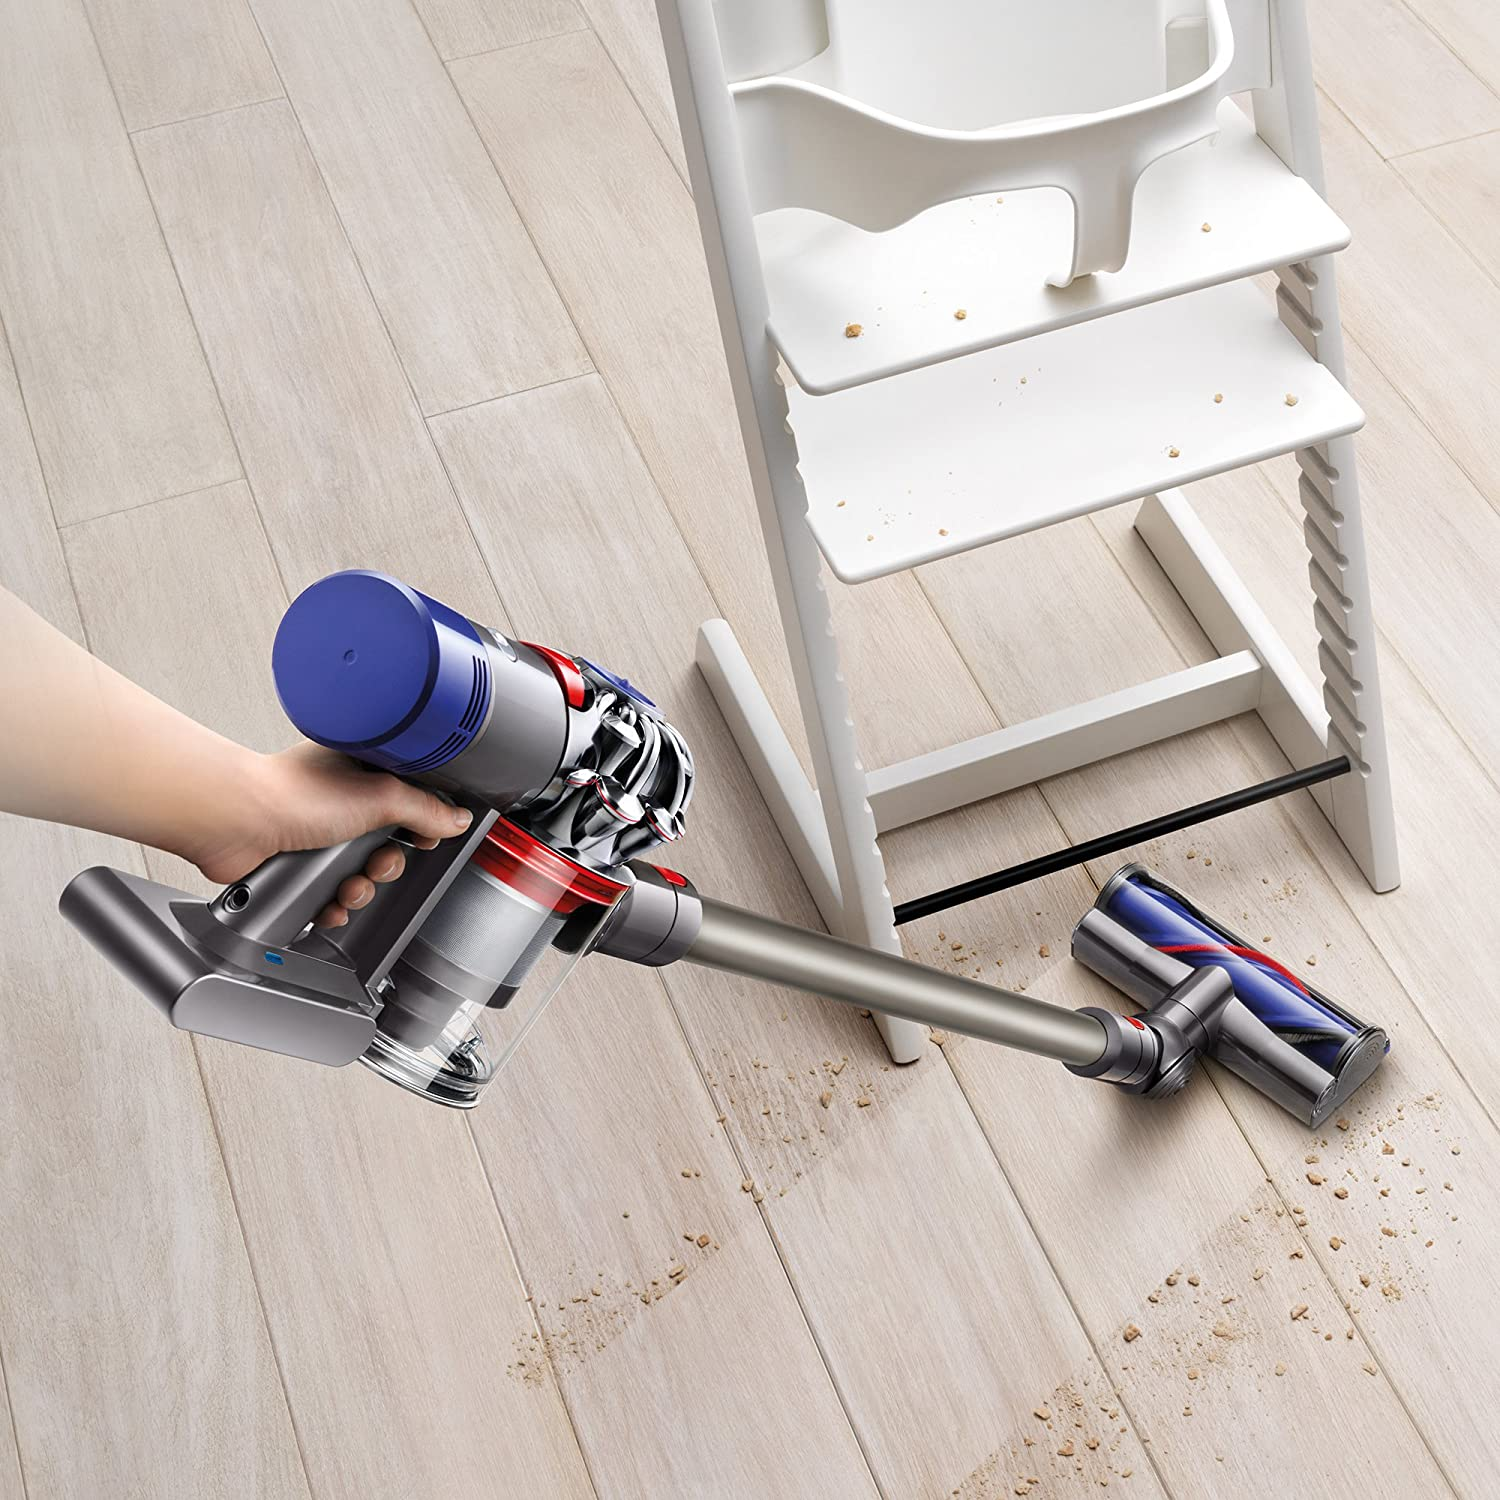 The 7 Best Stick Vacuums Reviewed 6